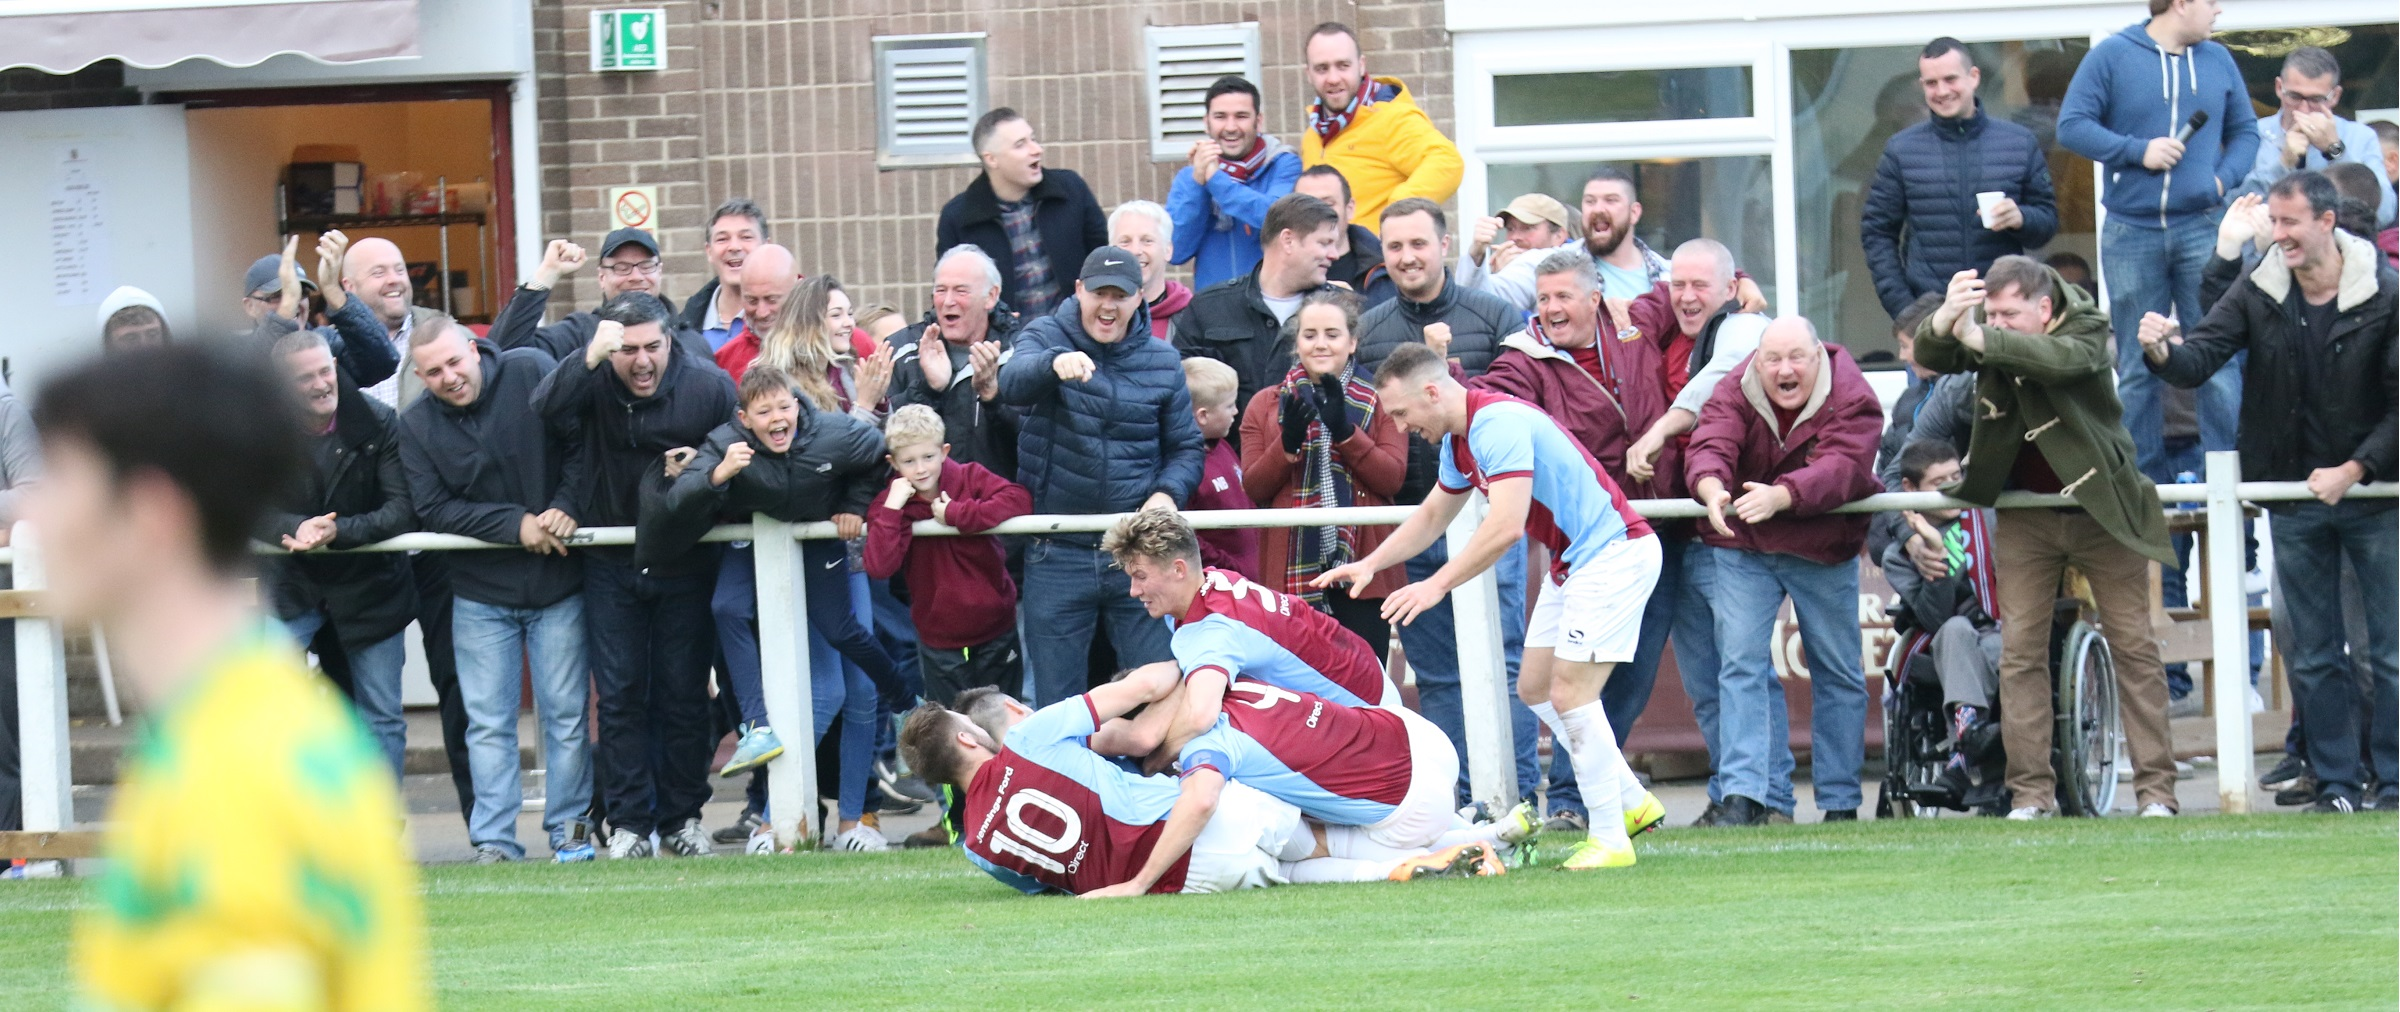 Marske United to visit Mariners Park in FA Vase second round